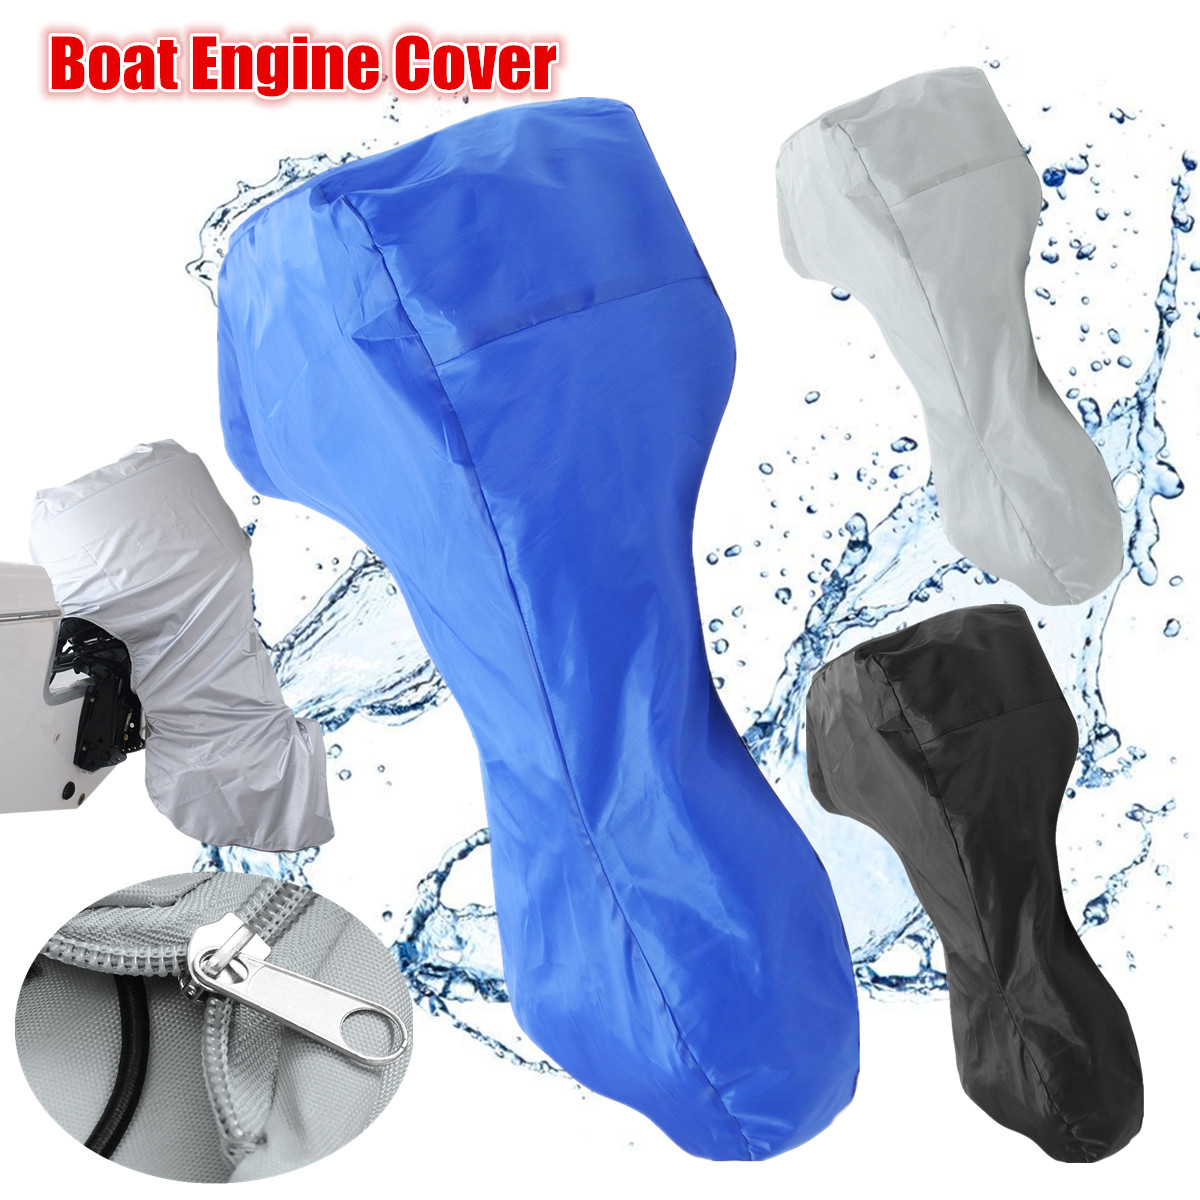 Boat Full Outboard Motor Engine Cover Fits Up to 100-150HP 81x85x70/'/' Waterproof